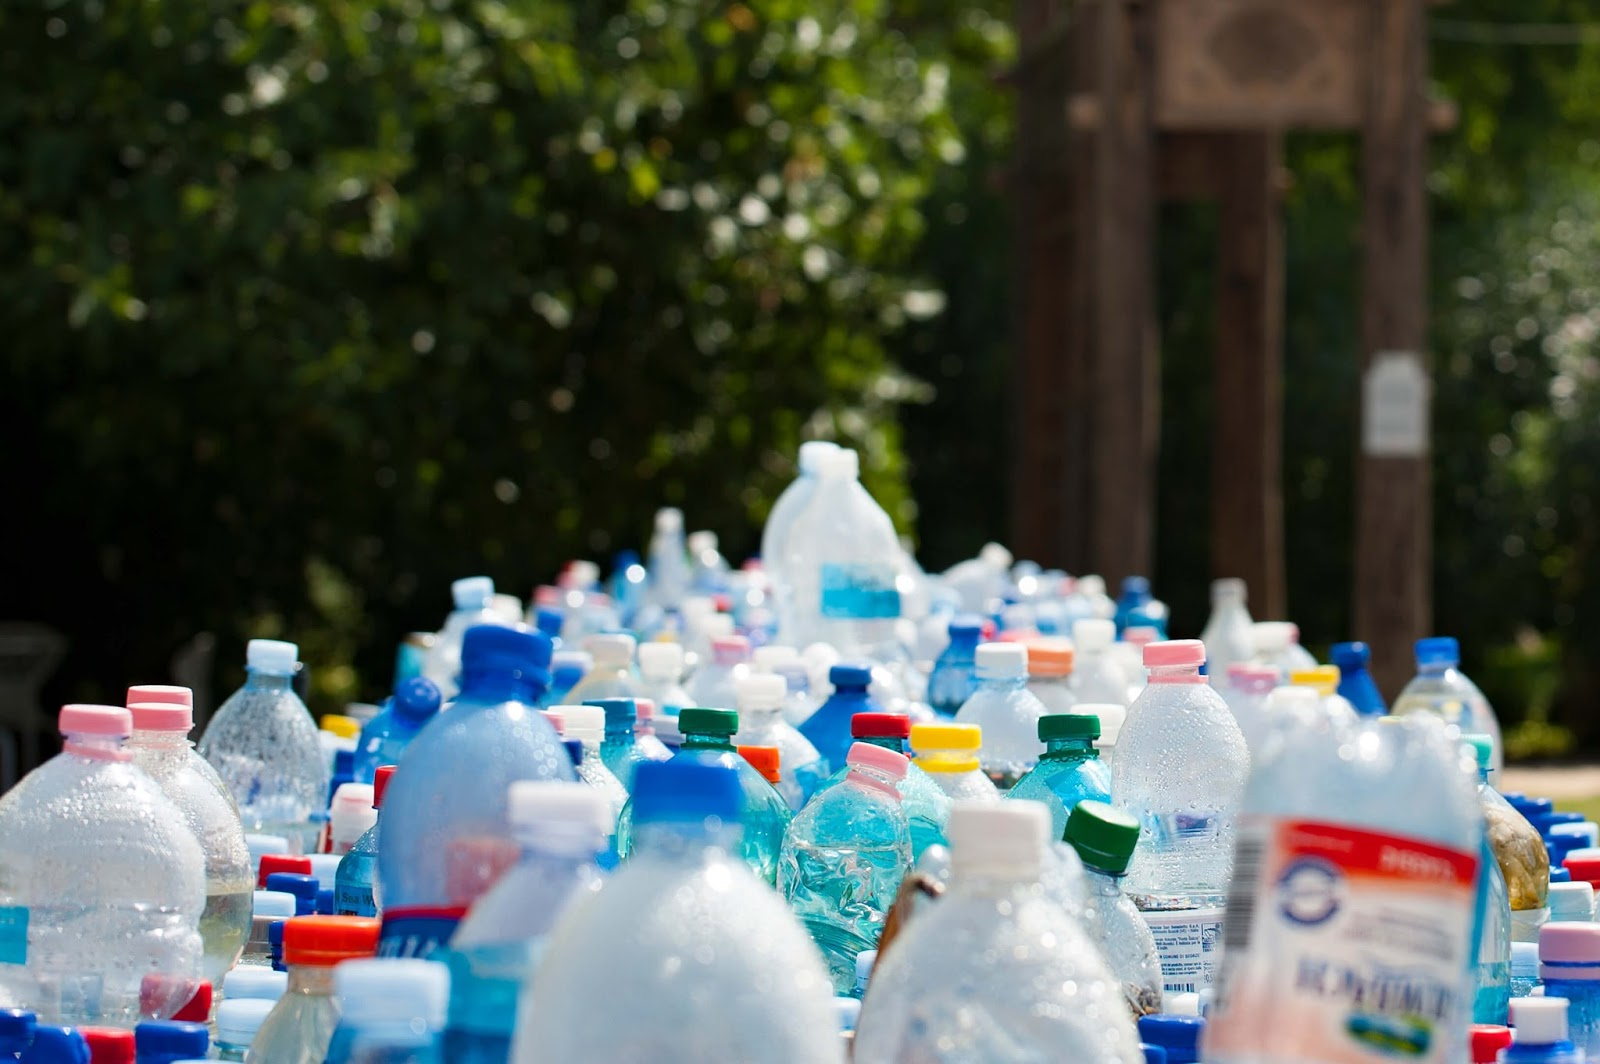 The EU Has Finally Found A Solution To The Uncontrollable Use Of Plastic